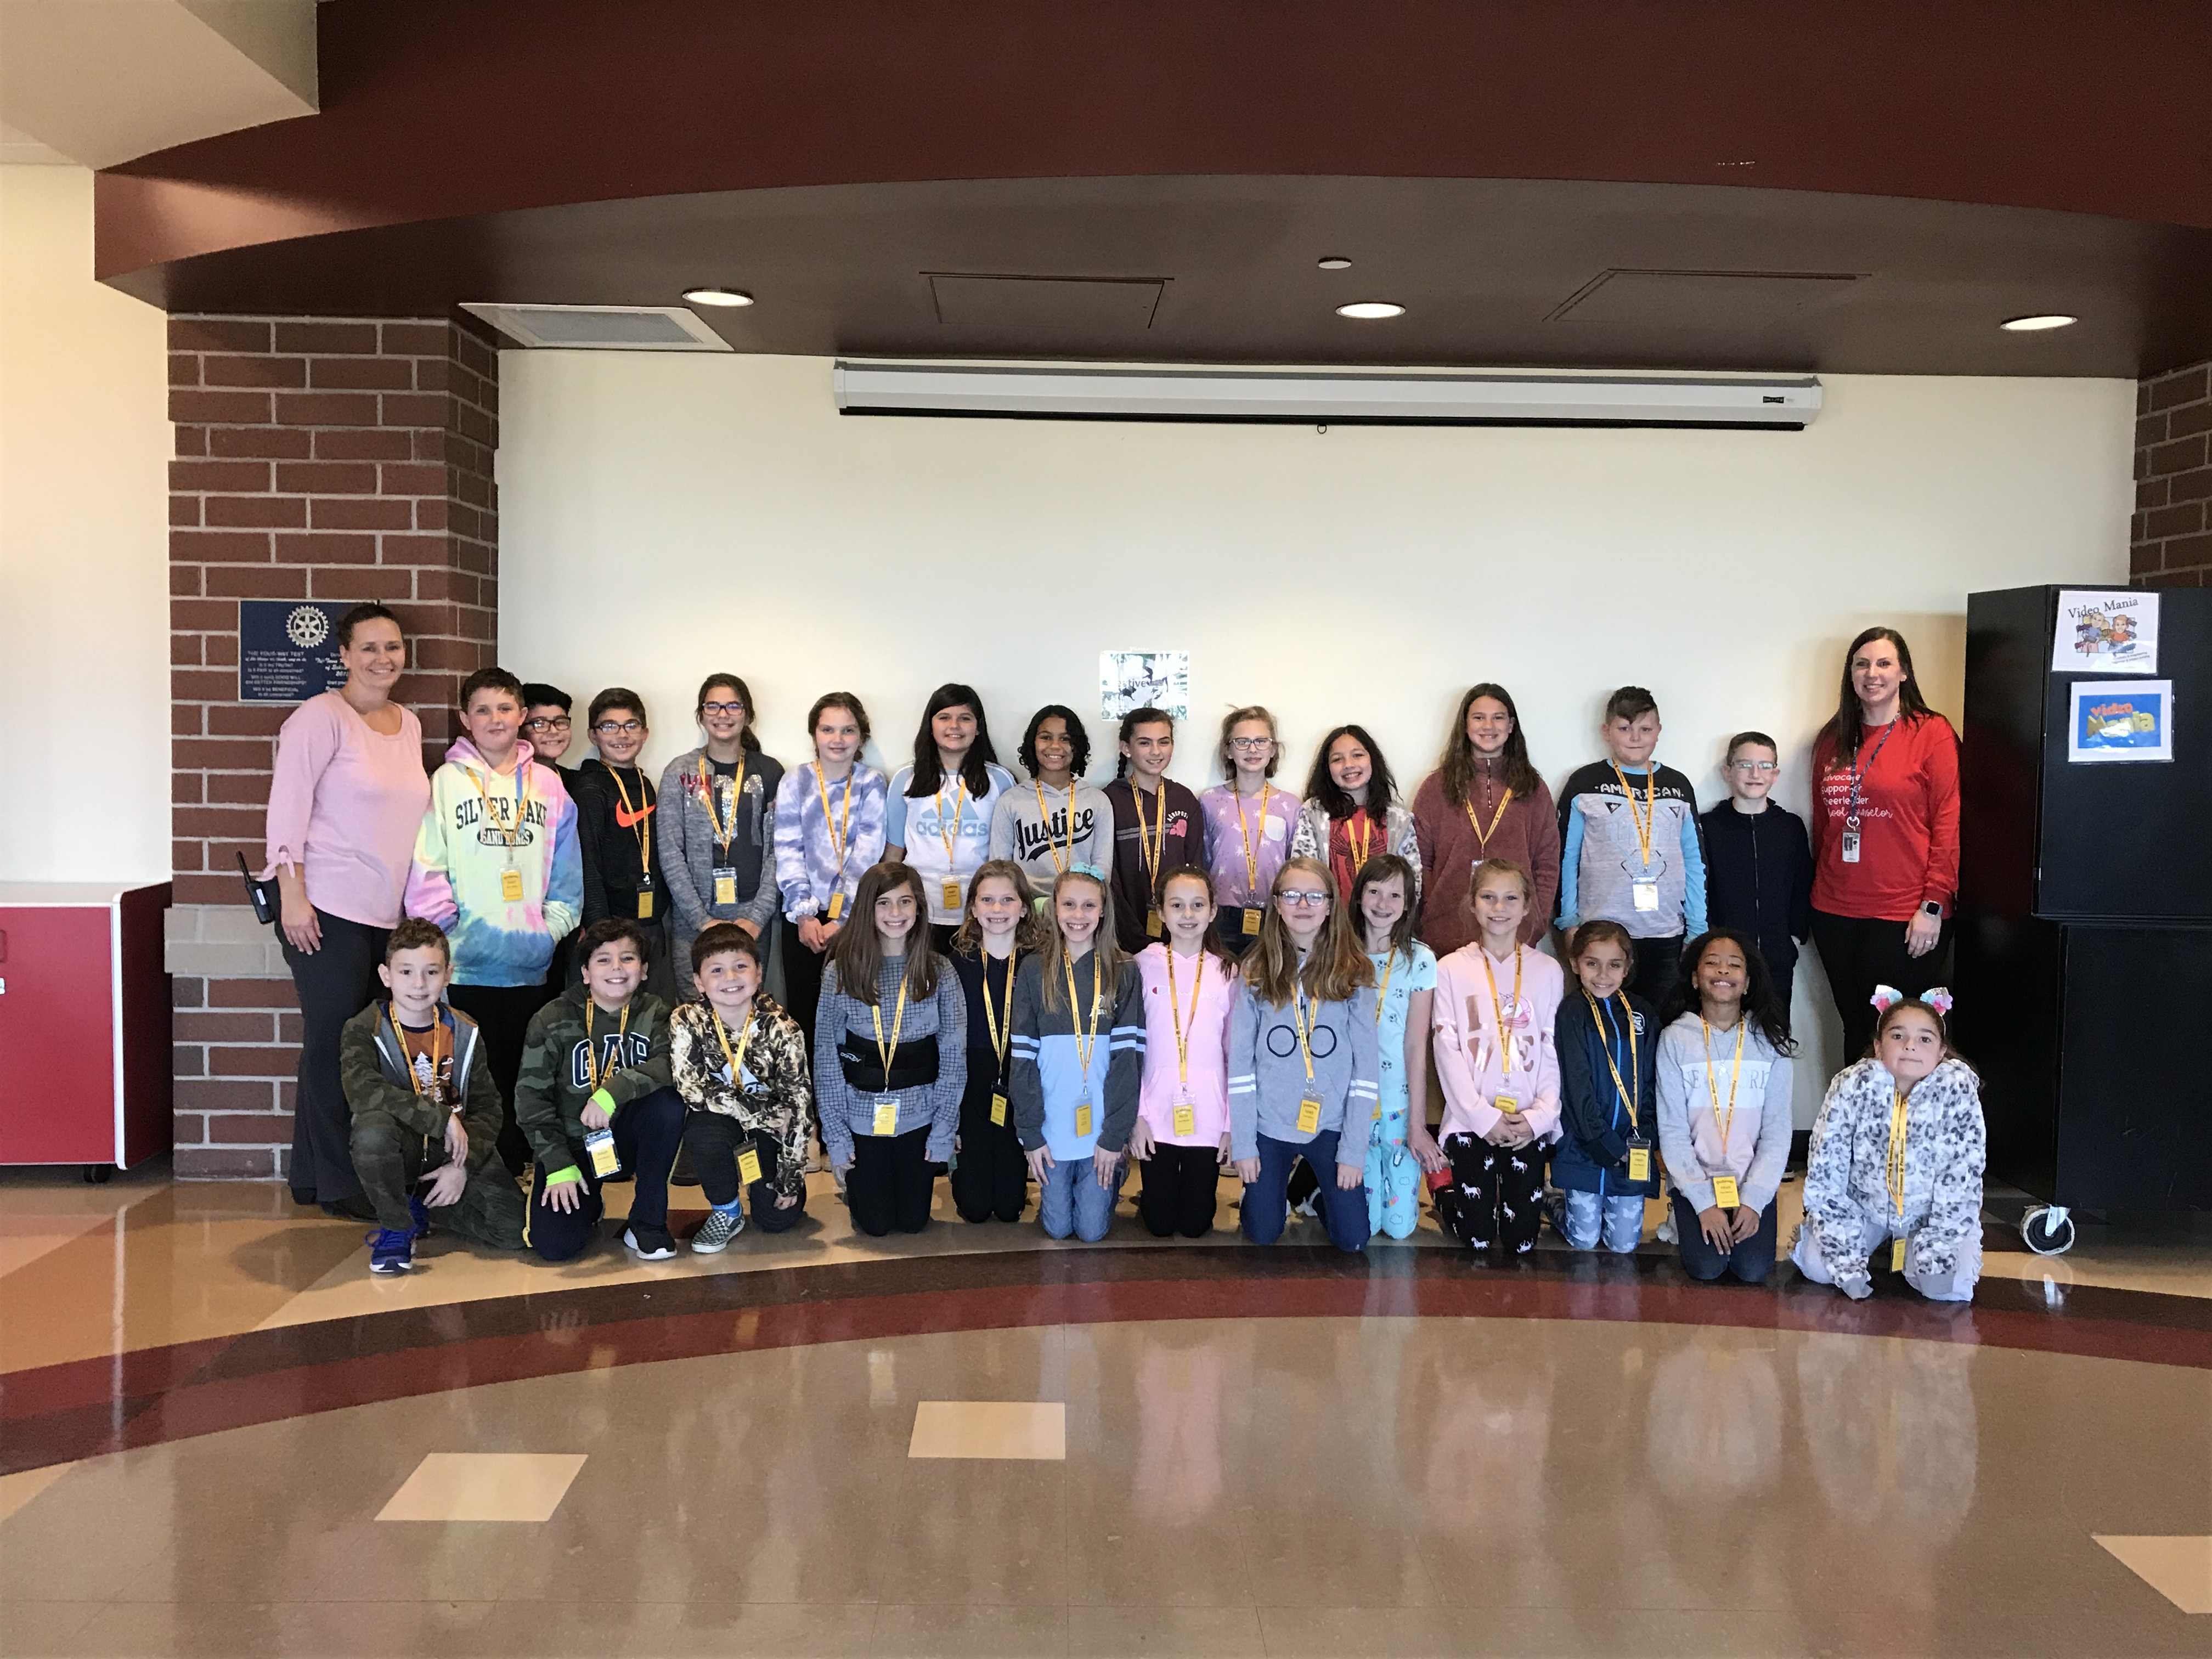 Congratulations to our Protsman Grade 4 Paws Peer Mentors! They have completed their training program and are ready to begin mentoring other students throughout the building.